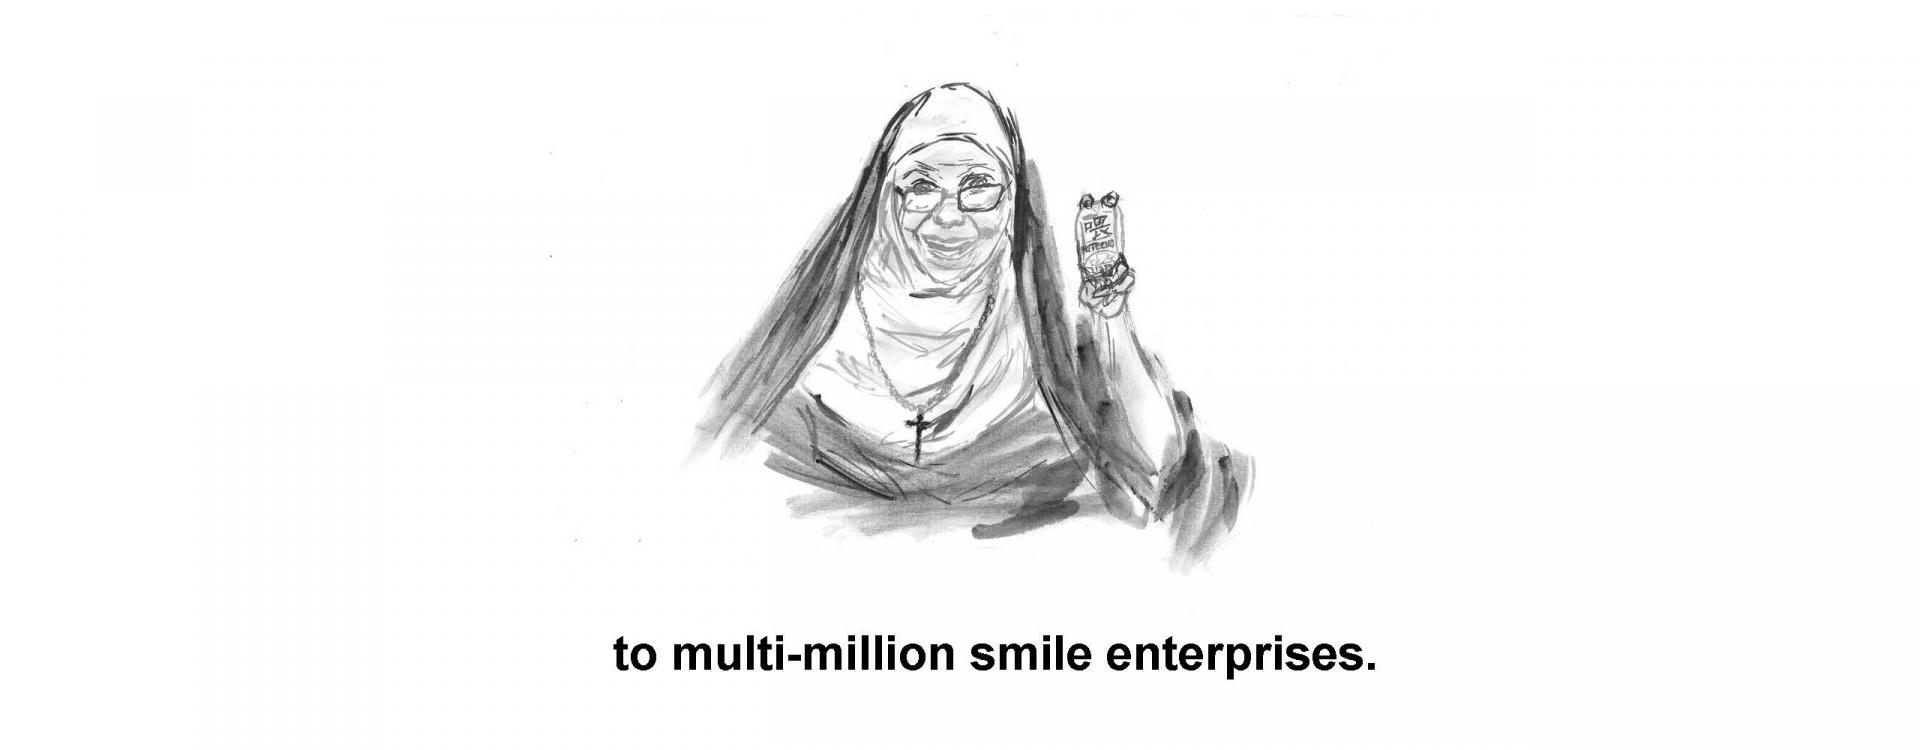 to multi-million smile enterprises.